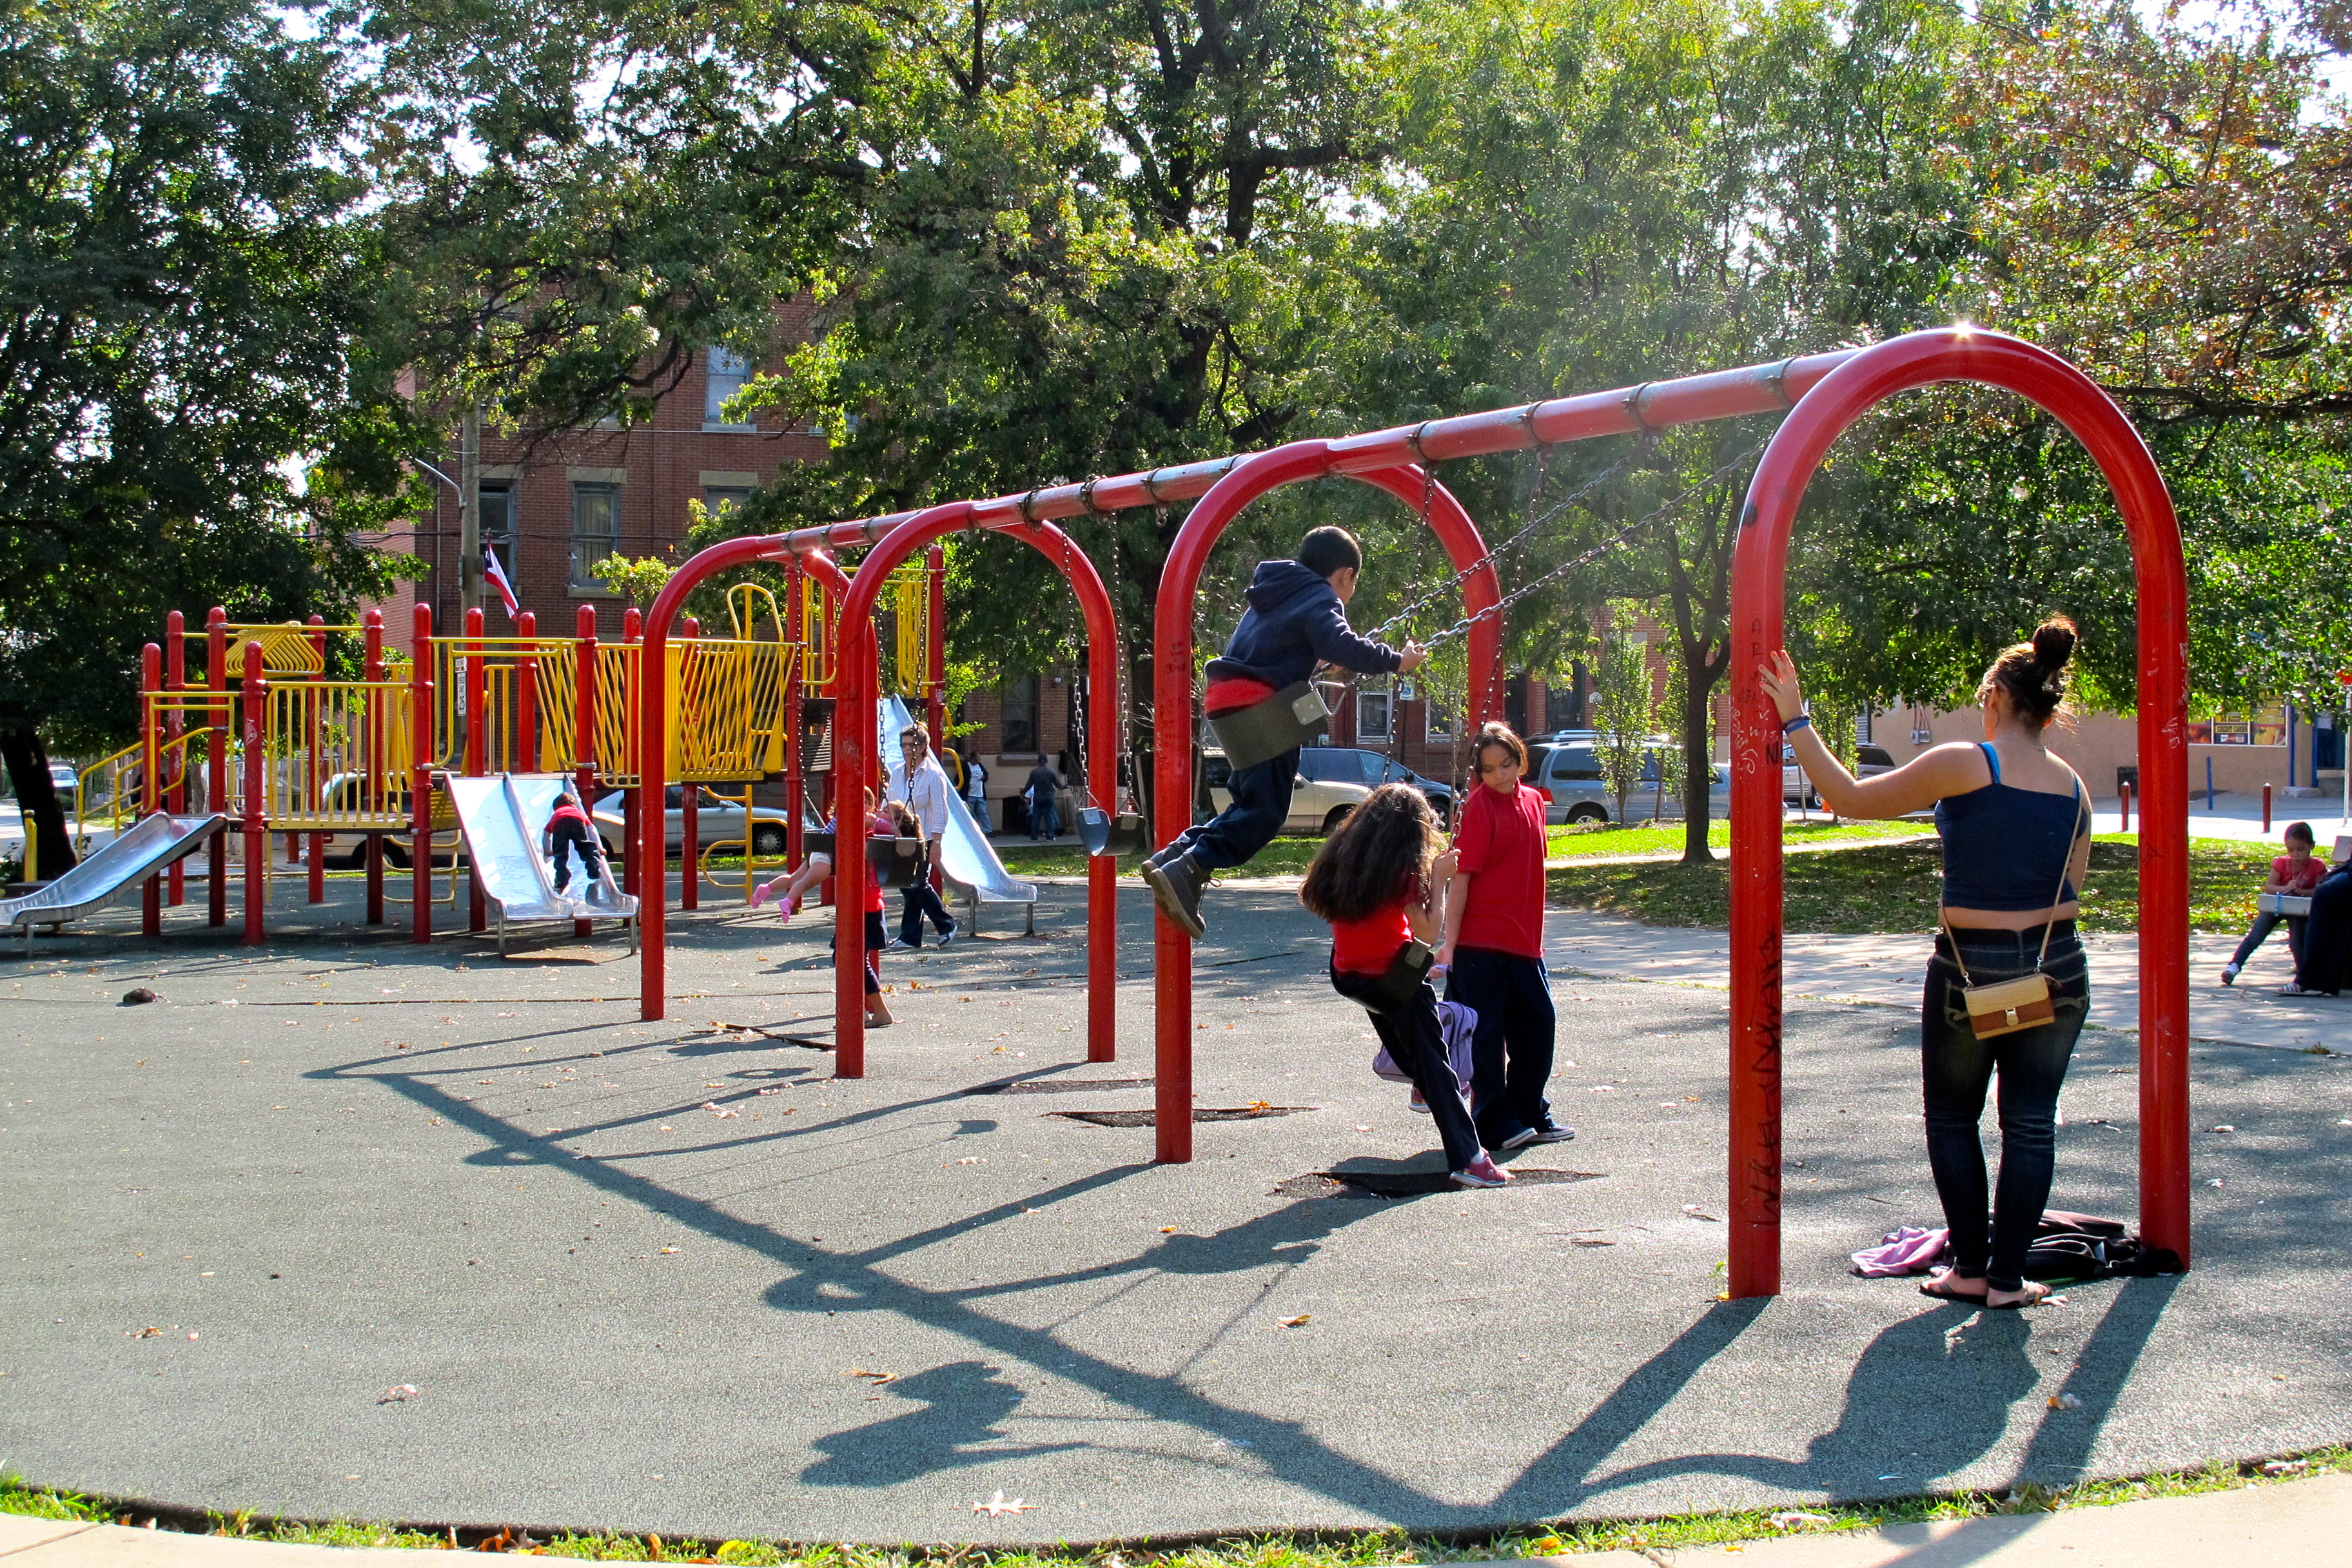 Fairhill Square's playground is well-used